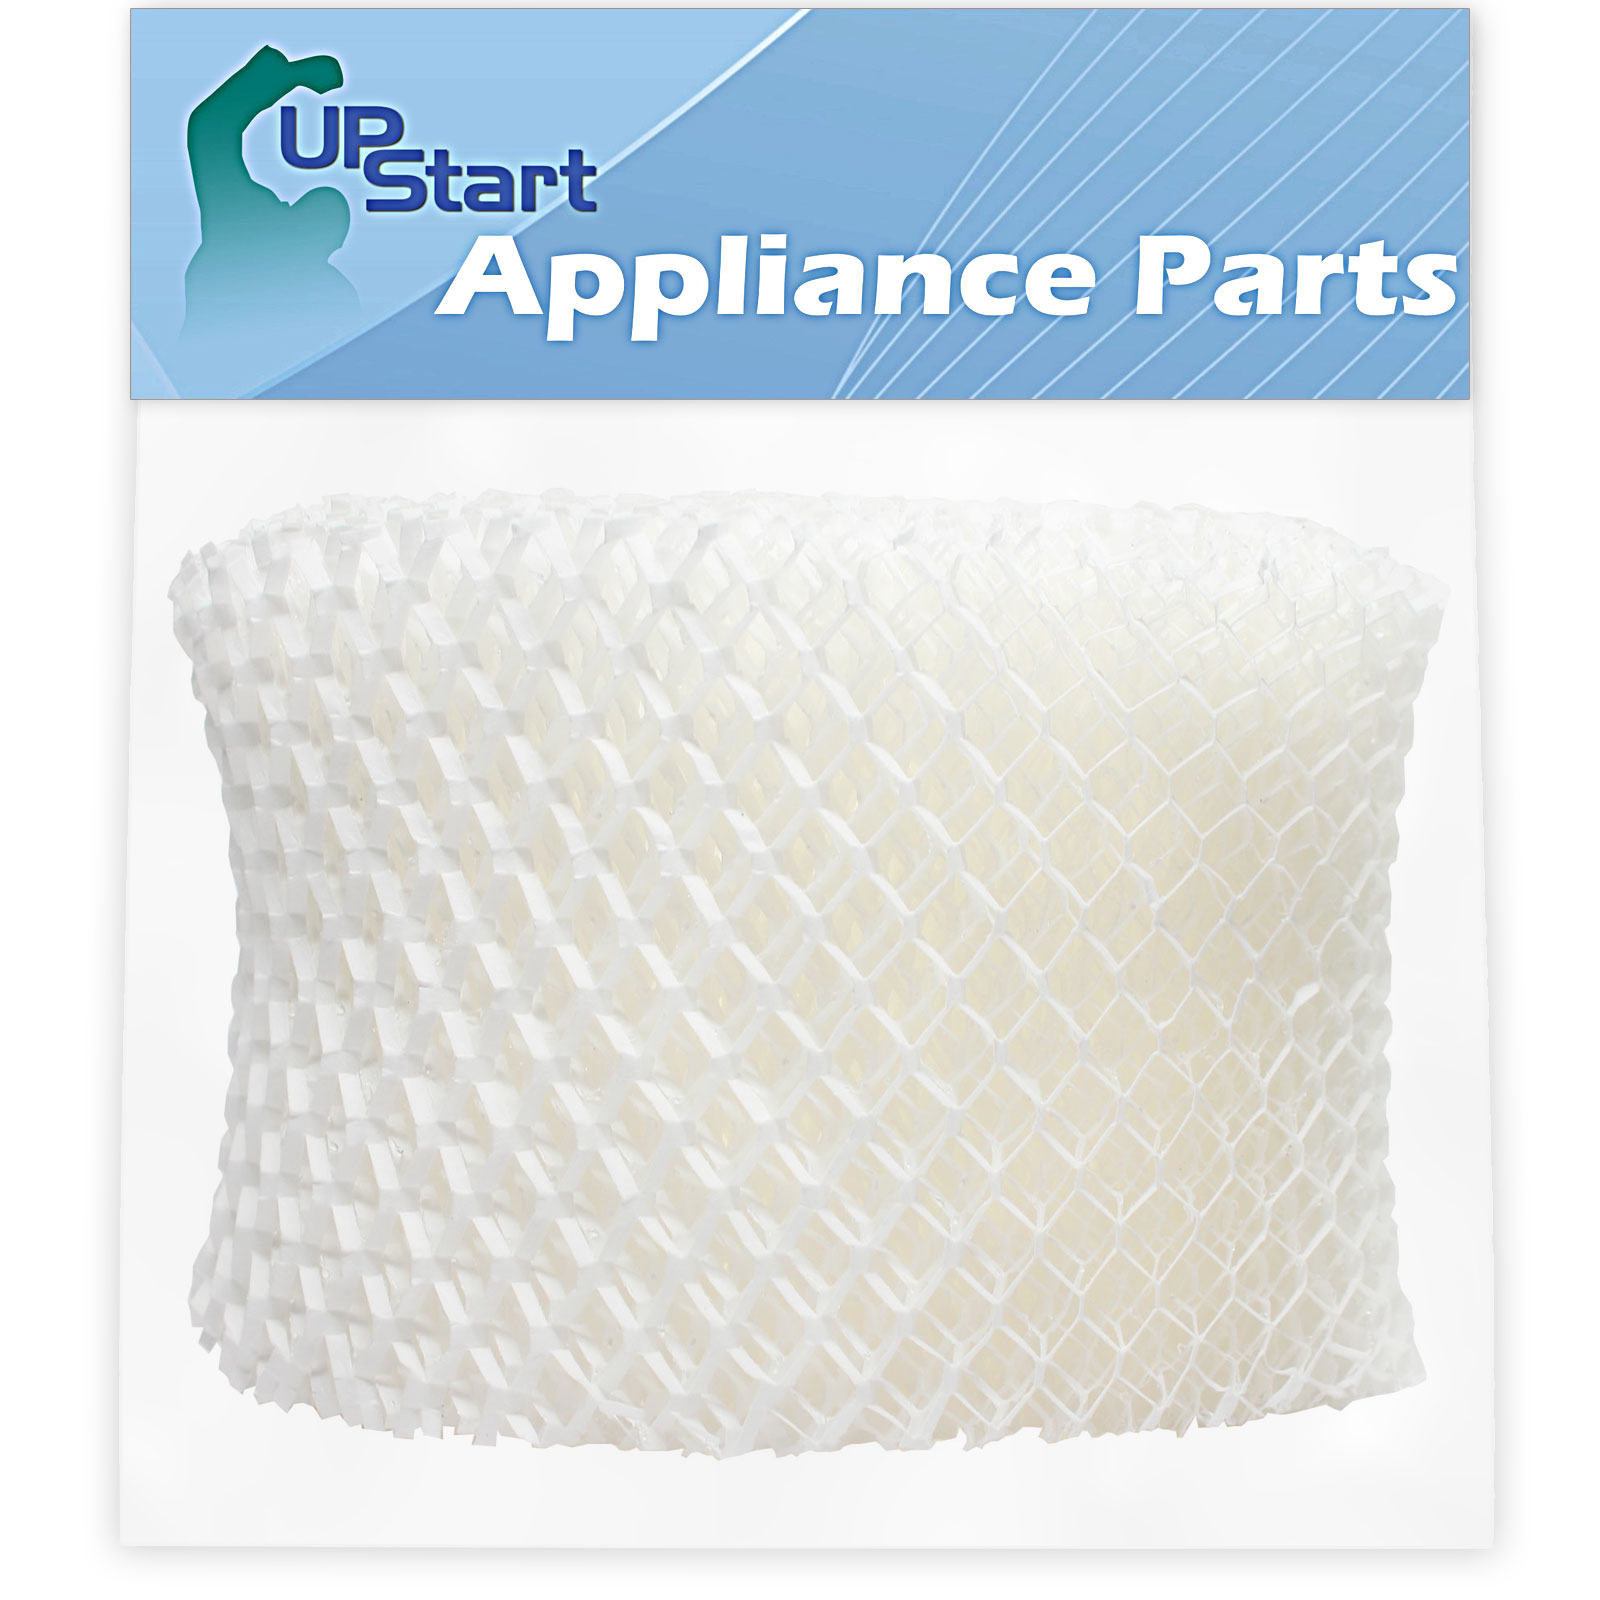 Replacement Honeywell HCM-646 Humidifier Filter - Compatible Honeywell HAC-504, HAC-504AW Air Filter - image 1 of 4